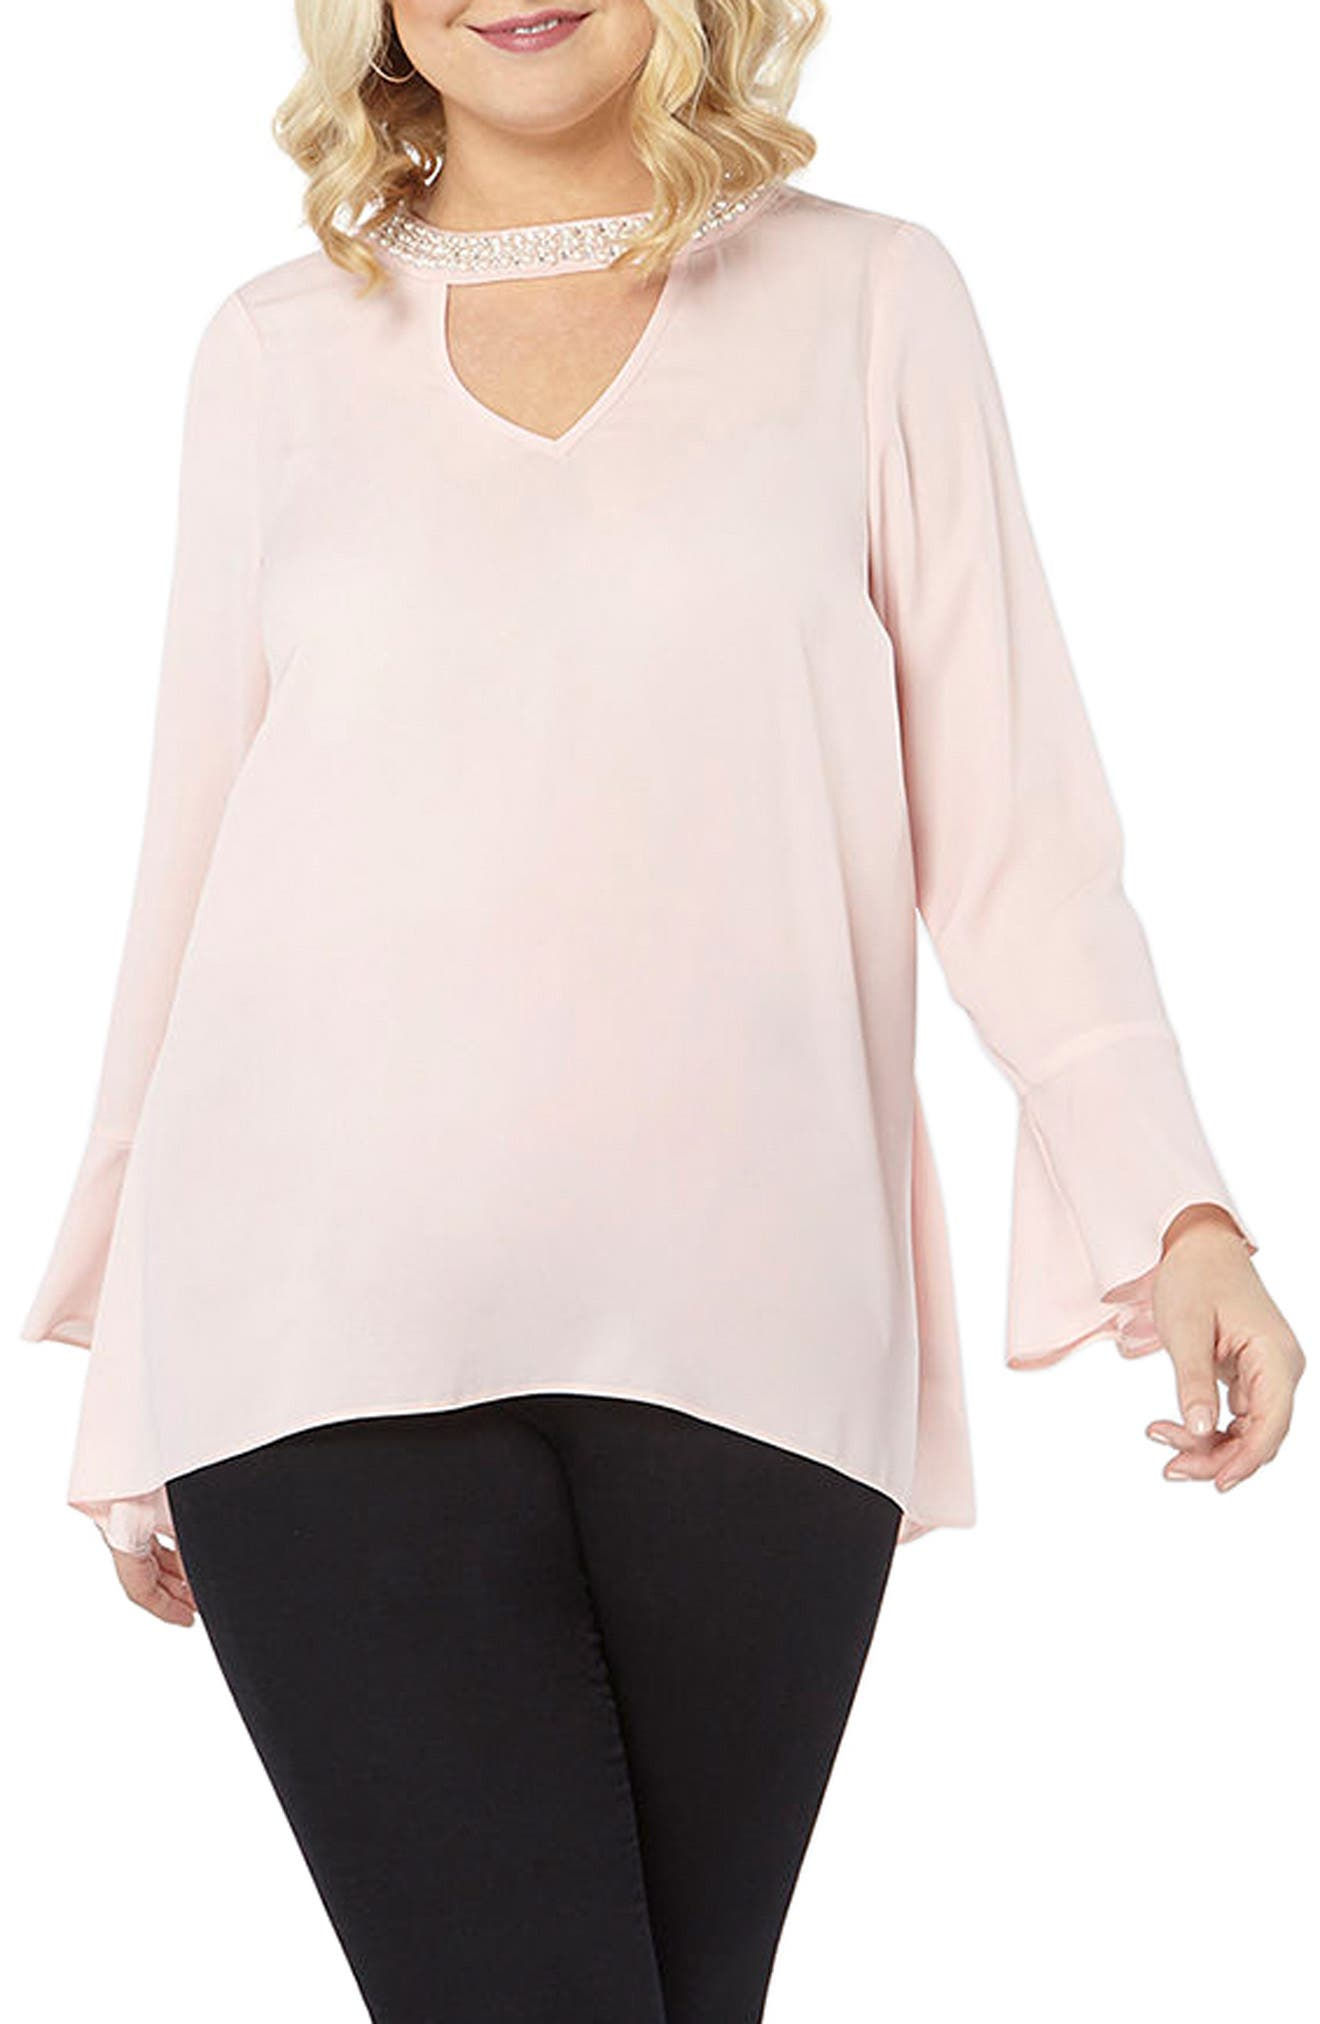 Main Image - Evans Bell Sleeve Pearly Choker Neck Top (Plus Size)